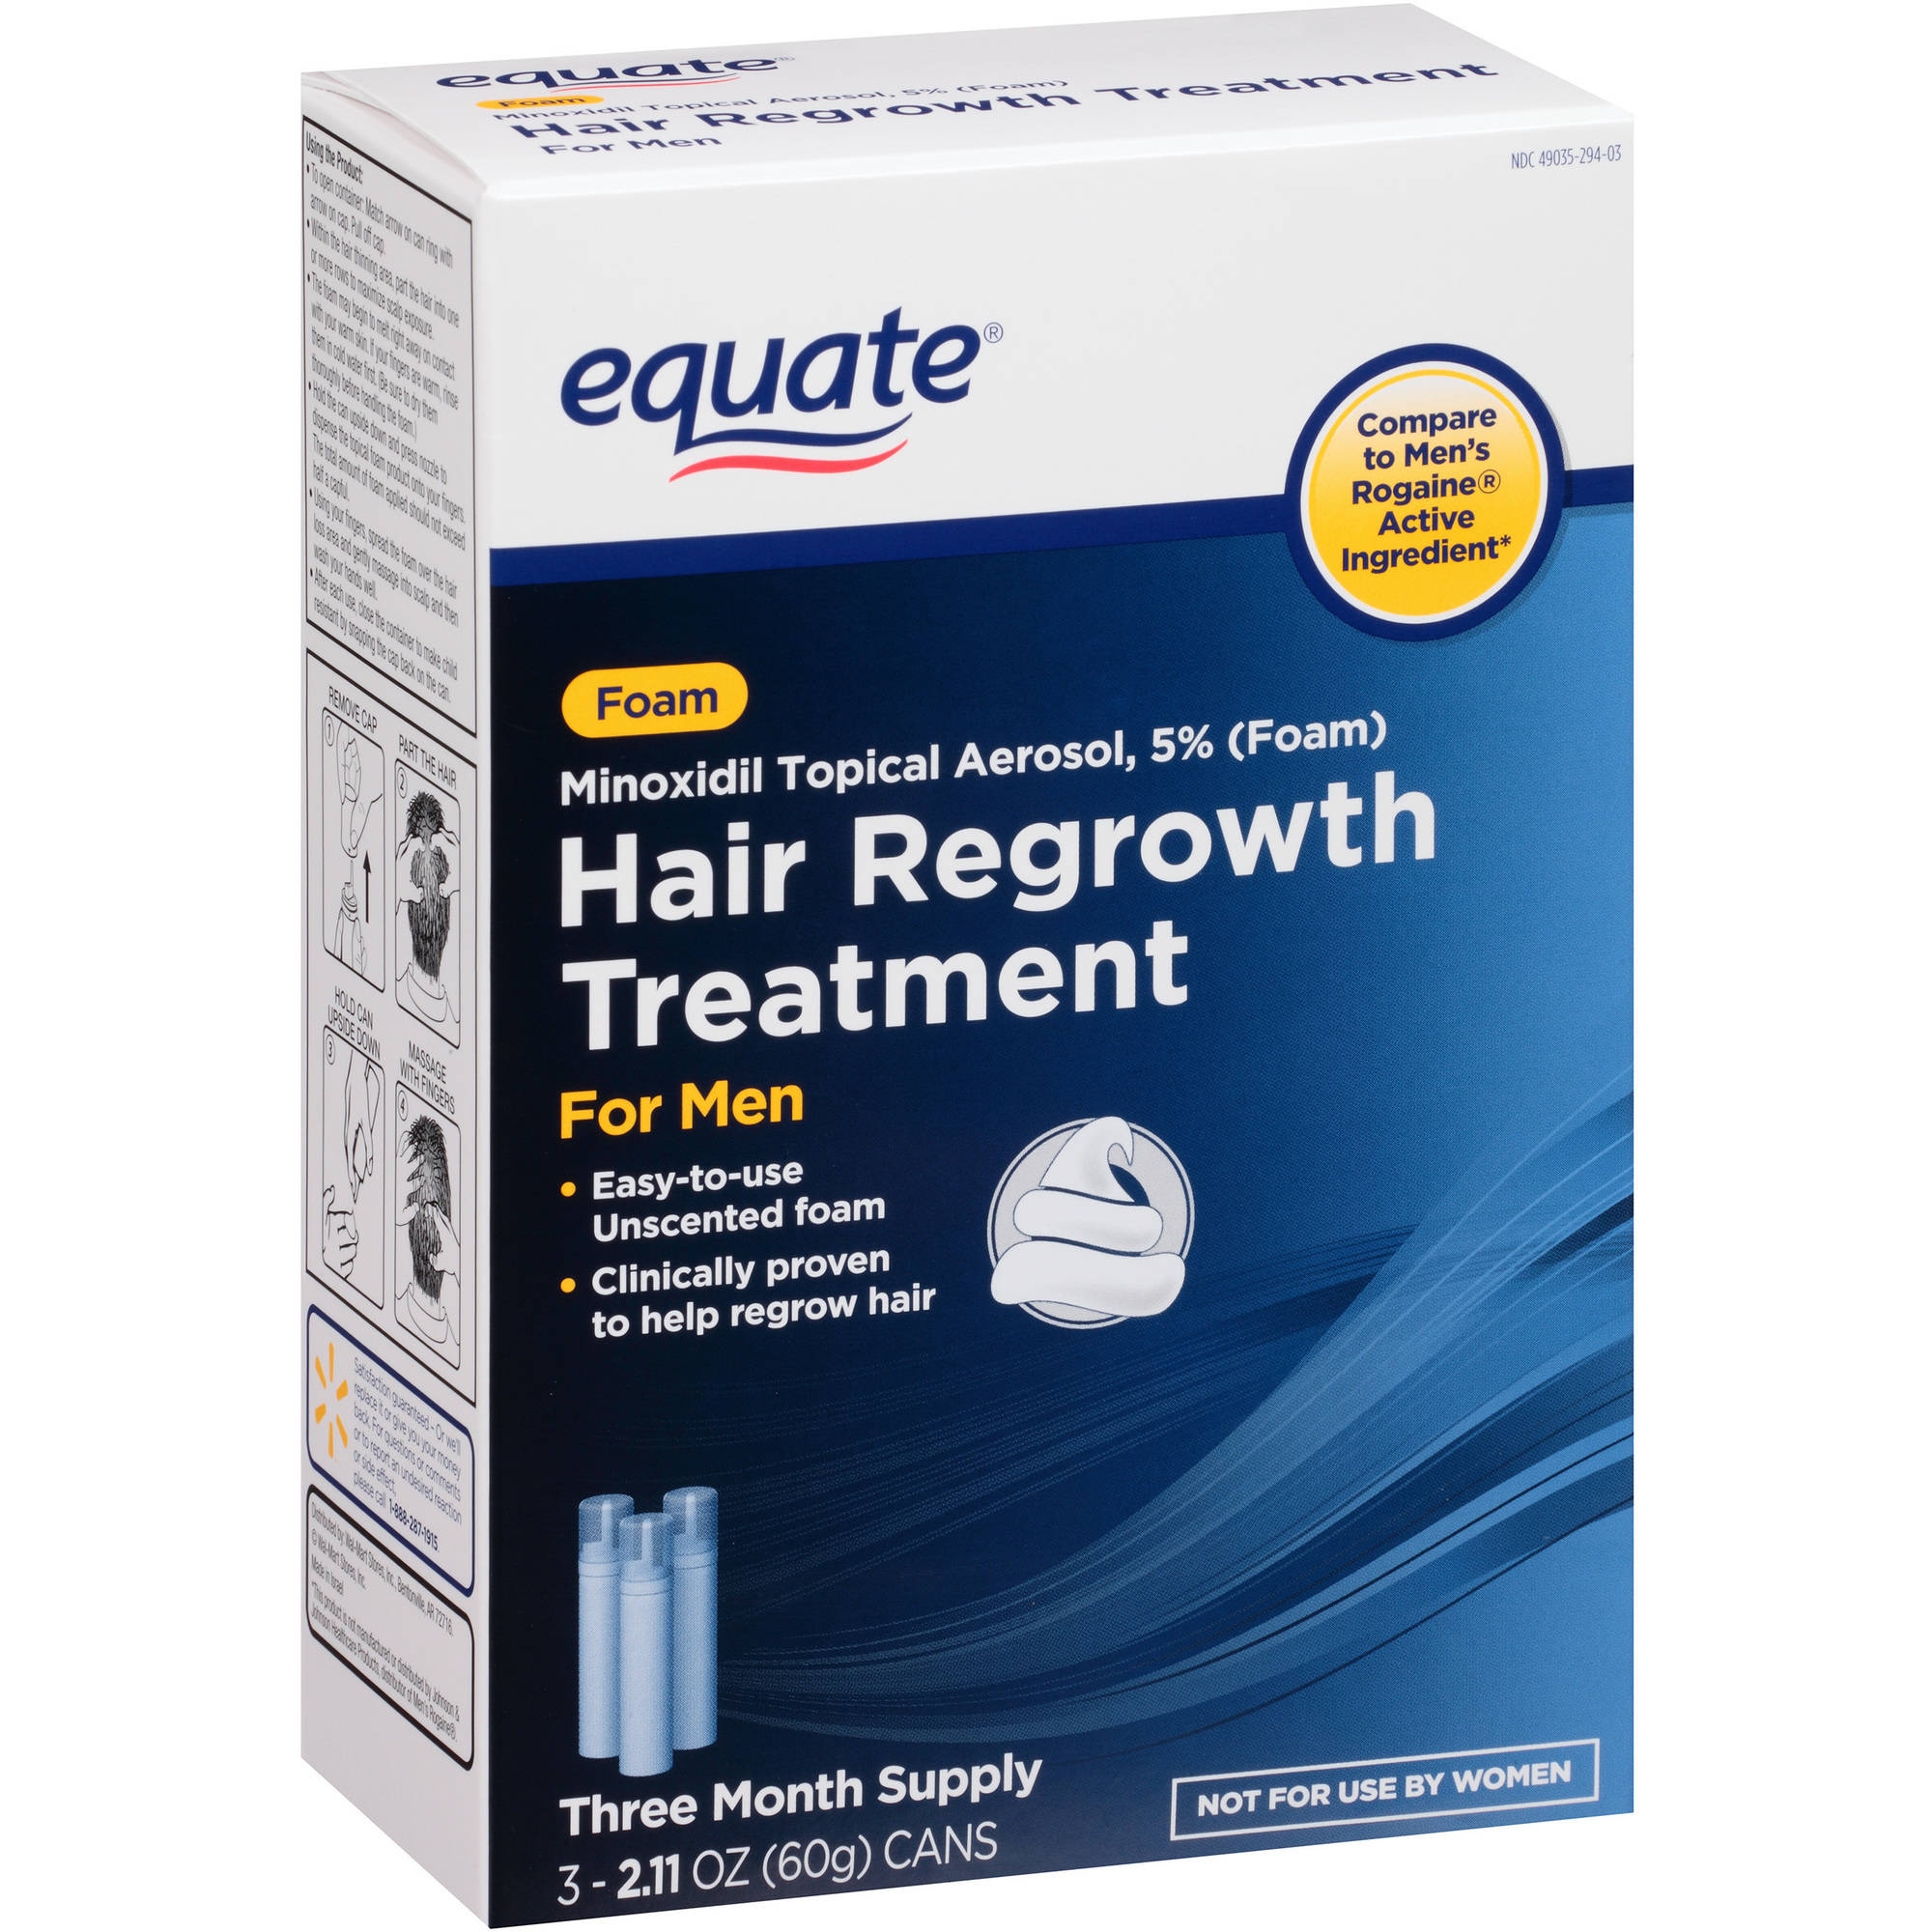 Equate Hair Regrowth Treatment for Men Minoxidil Topical Aerosol, 5% (Foam), 3 count